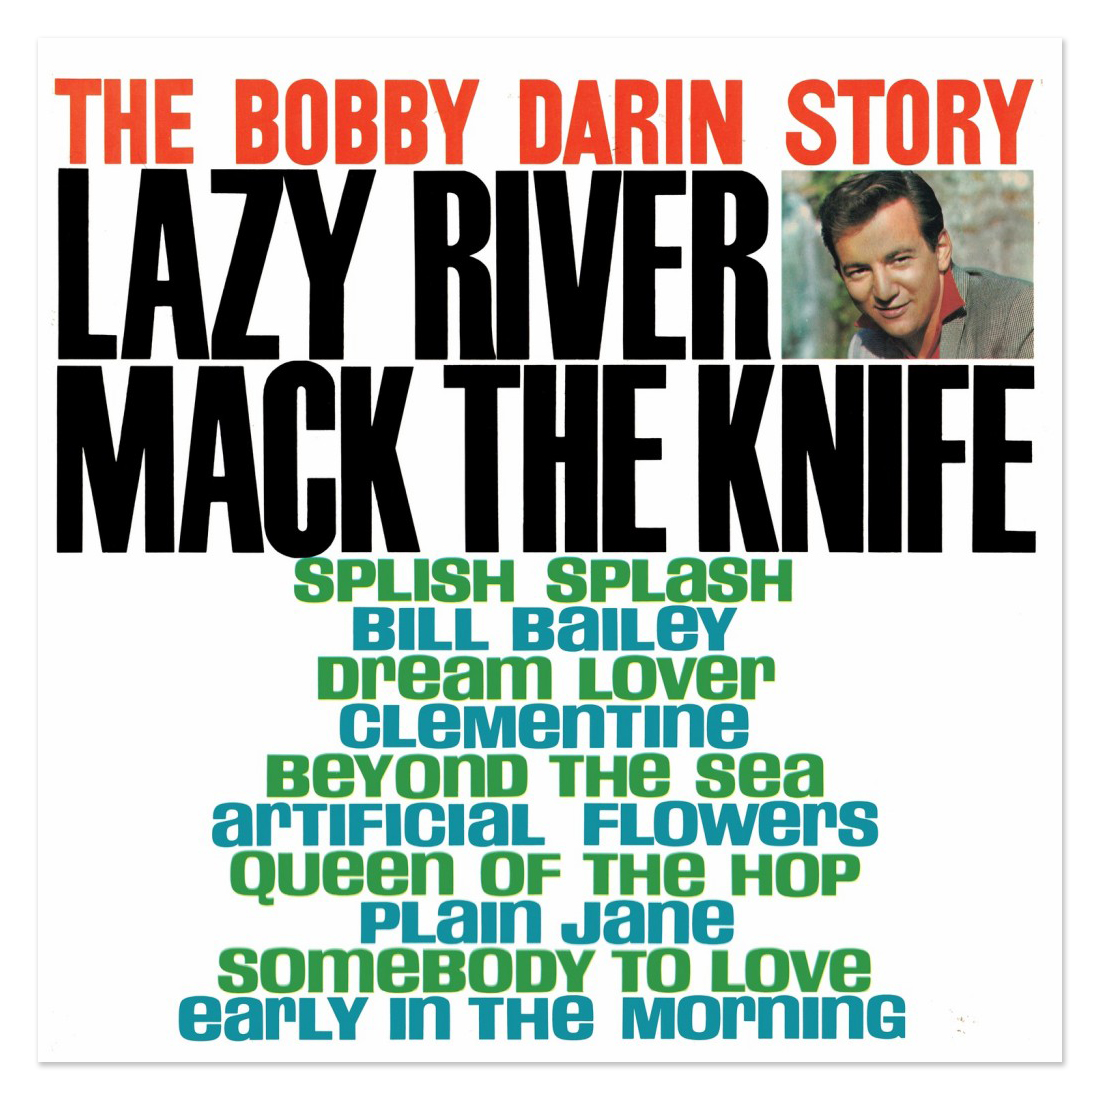 Bobby Darin The Bobby Darin Story-Greatest Hits (180 Gram Audiophile Vinyl/Limited Anniversary Edition)